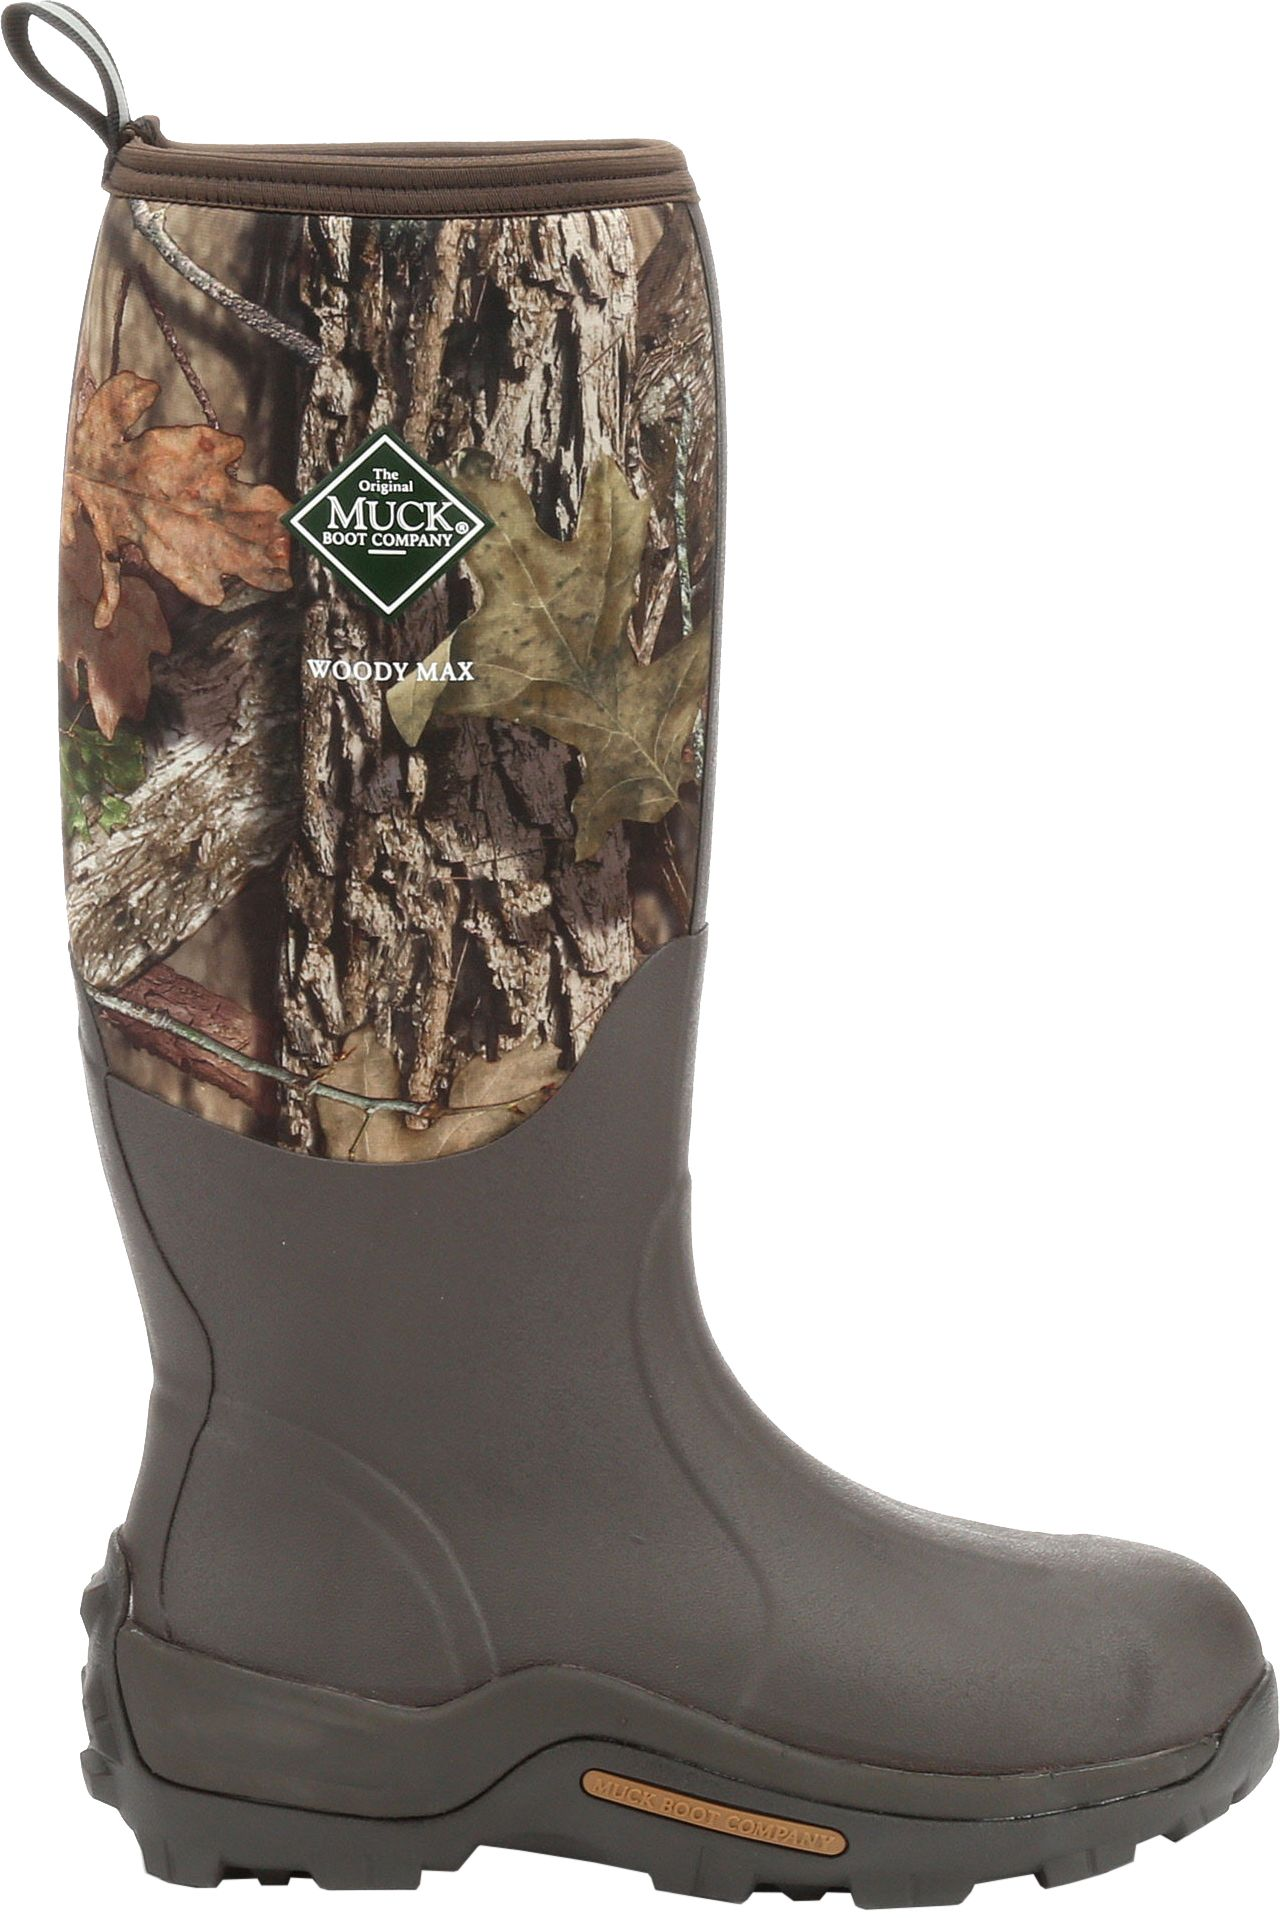 Muck Boots Outlet has the best clearance muck boots on sale. Find the cheapest muck boots anywhere. Order online today!